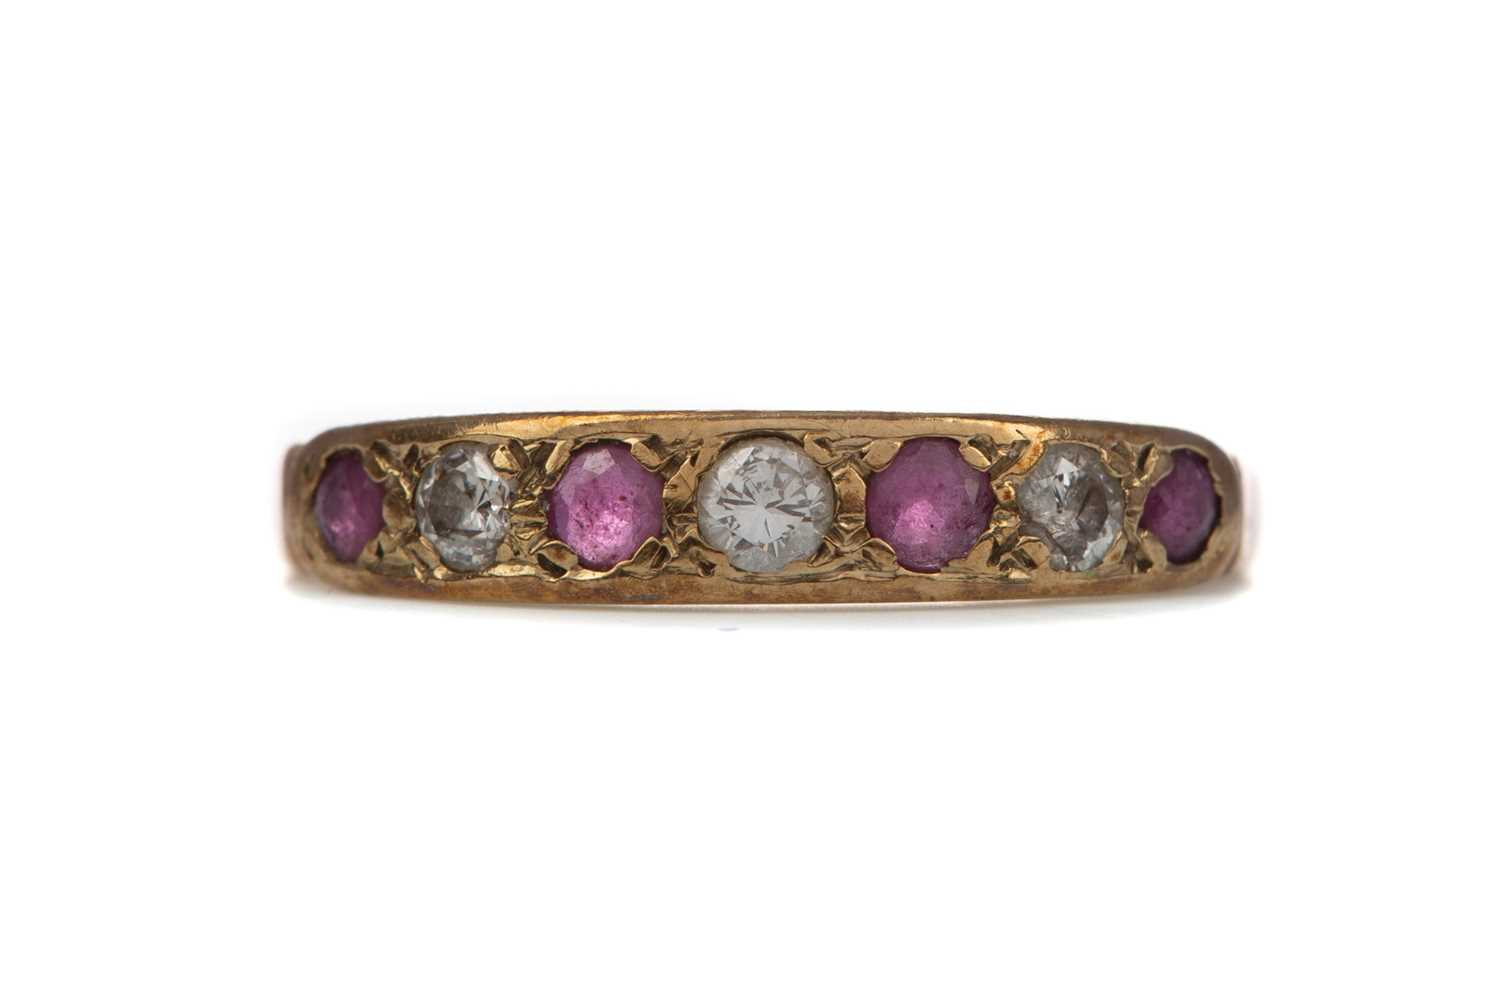 Lot 311 - A RUBY AND DIAMOND RING